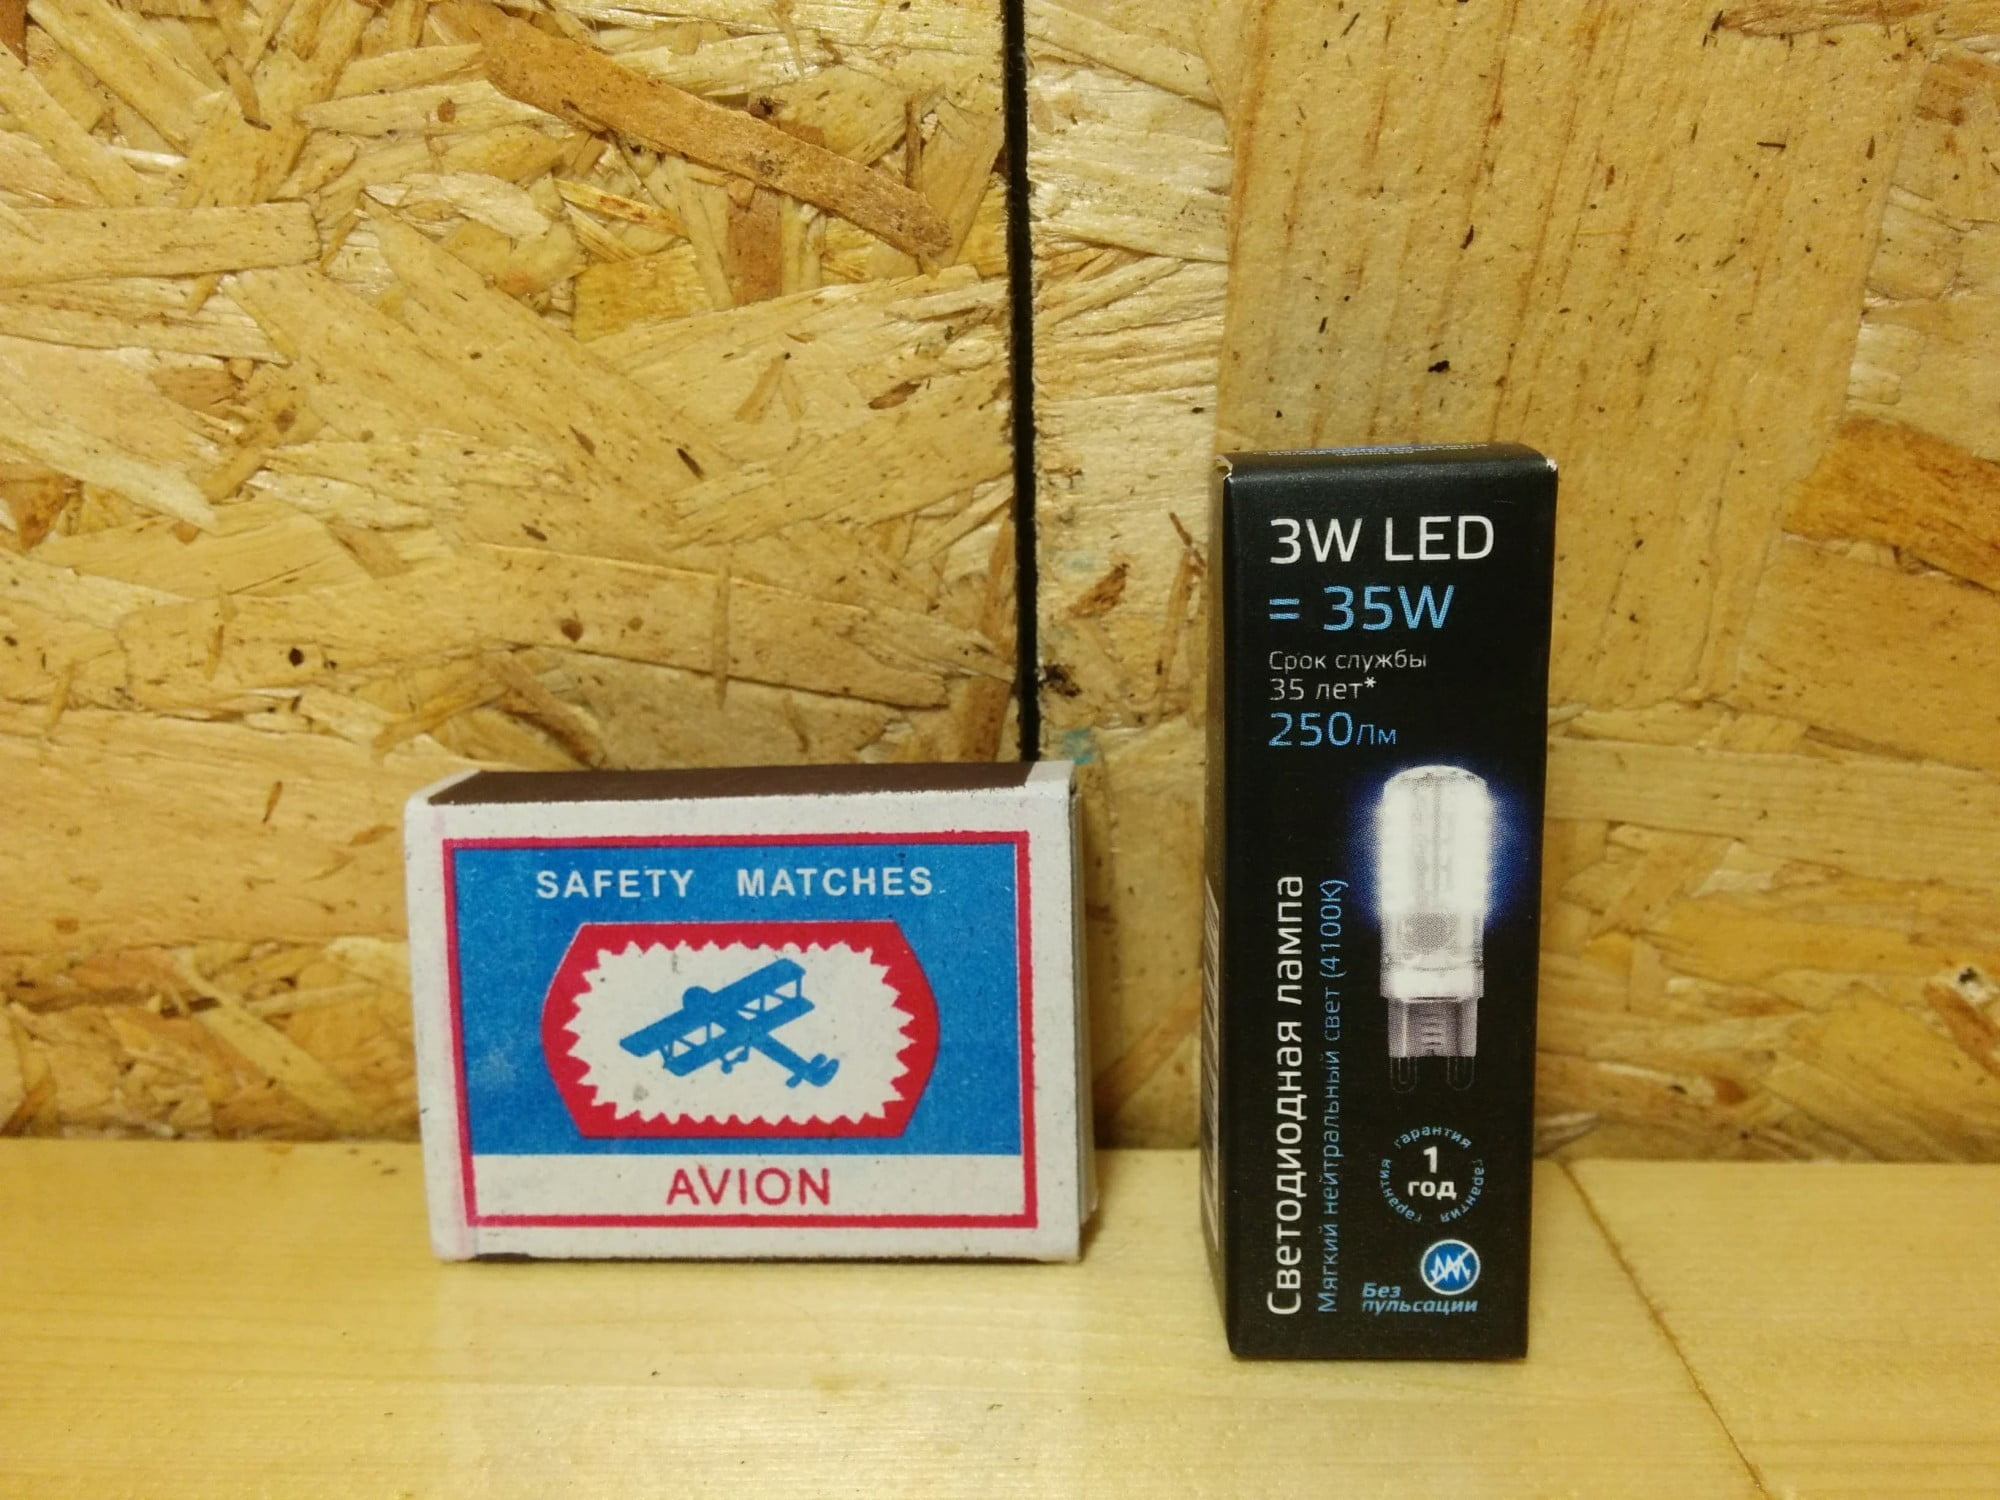 Gauss LED G9 AC185-265V 3W 4100K упаковка